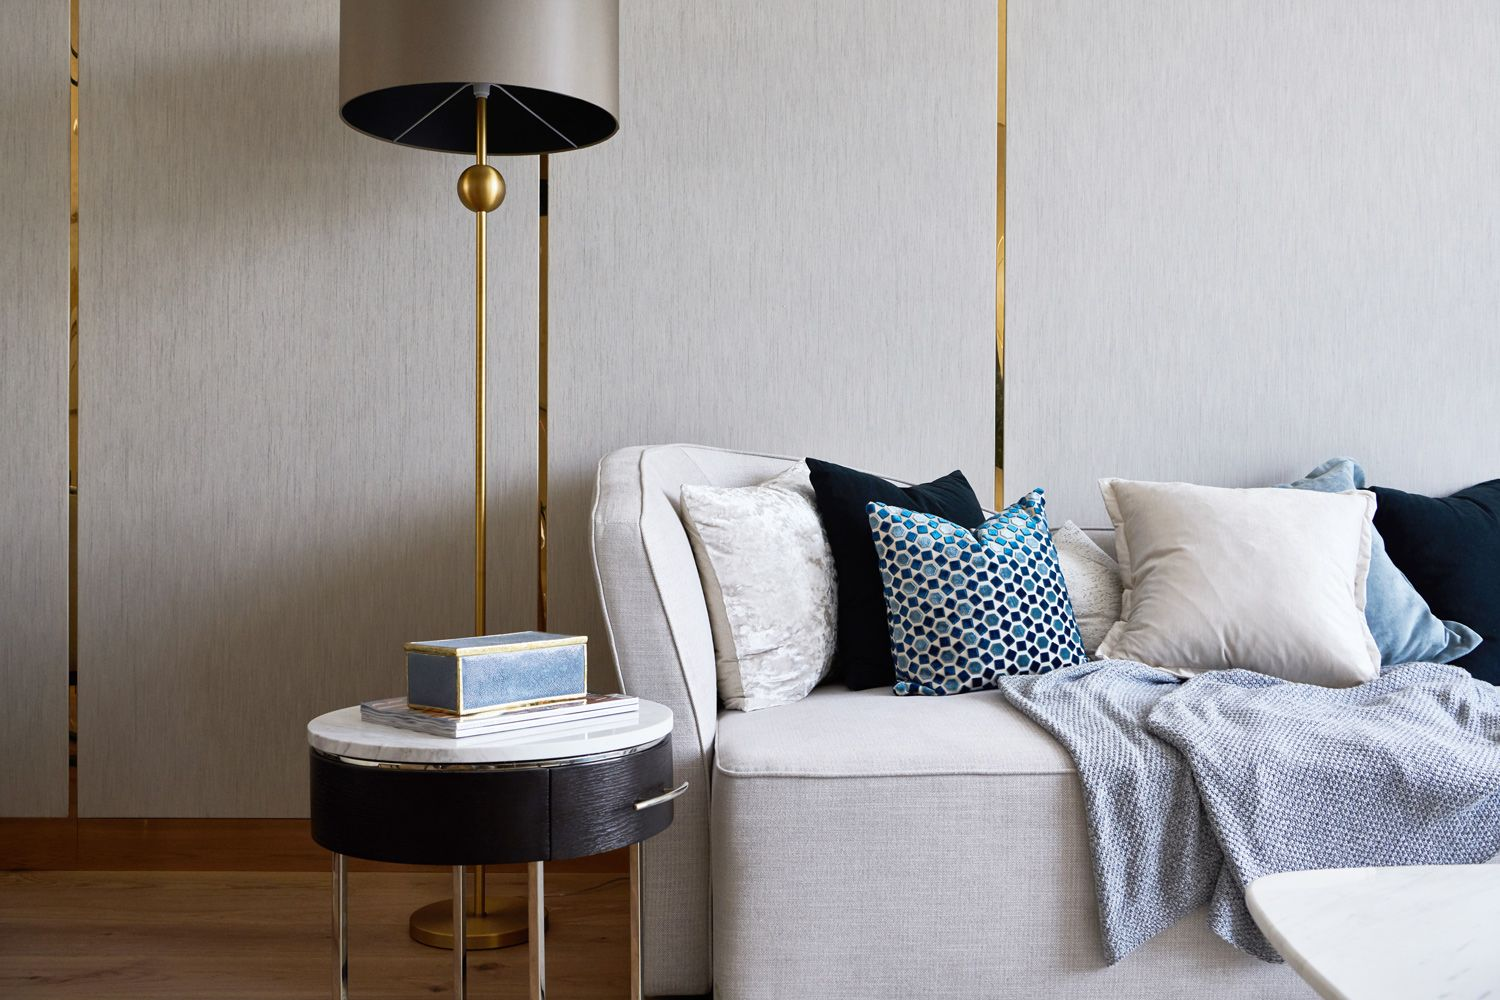 s pagewood townhouse interior 01